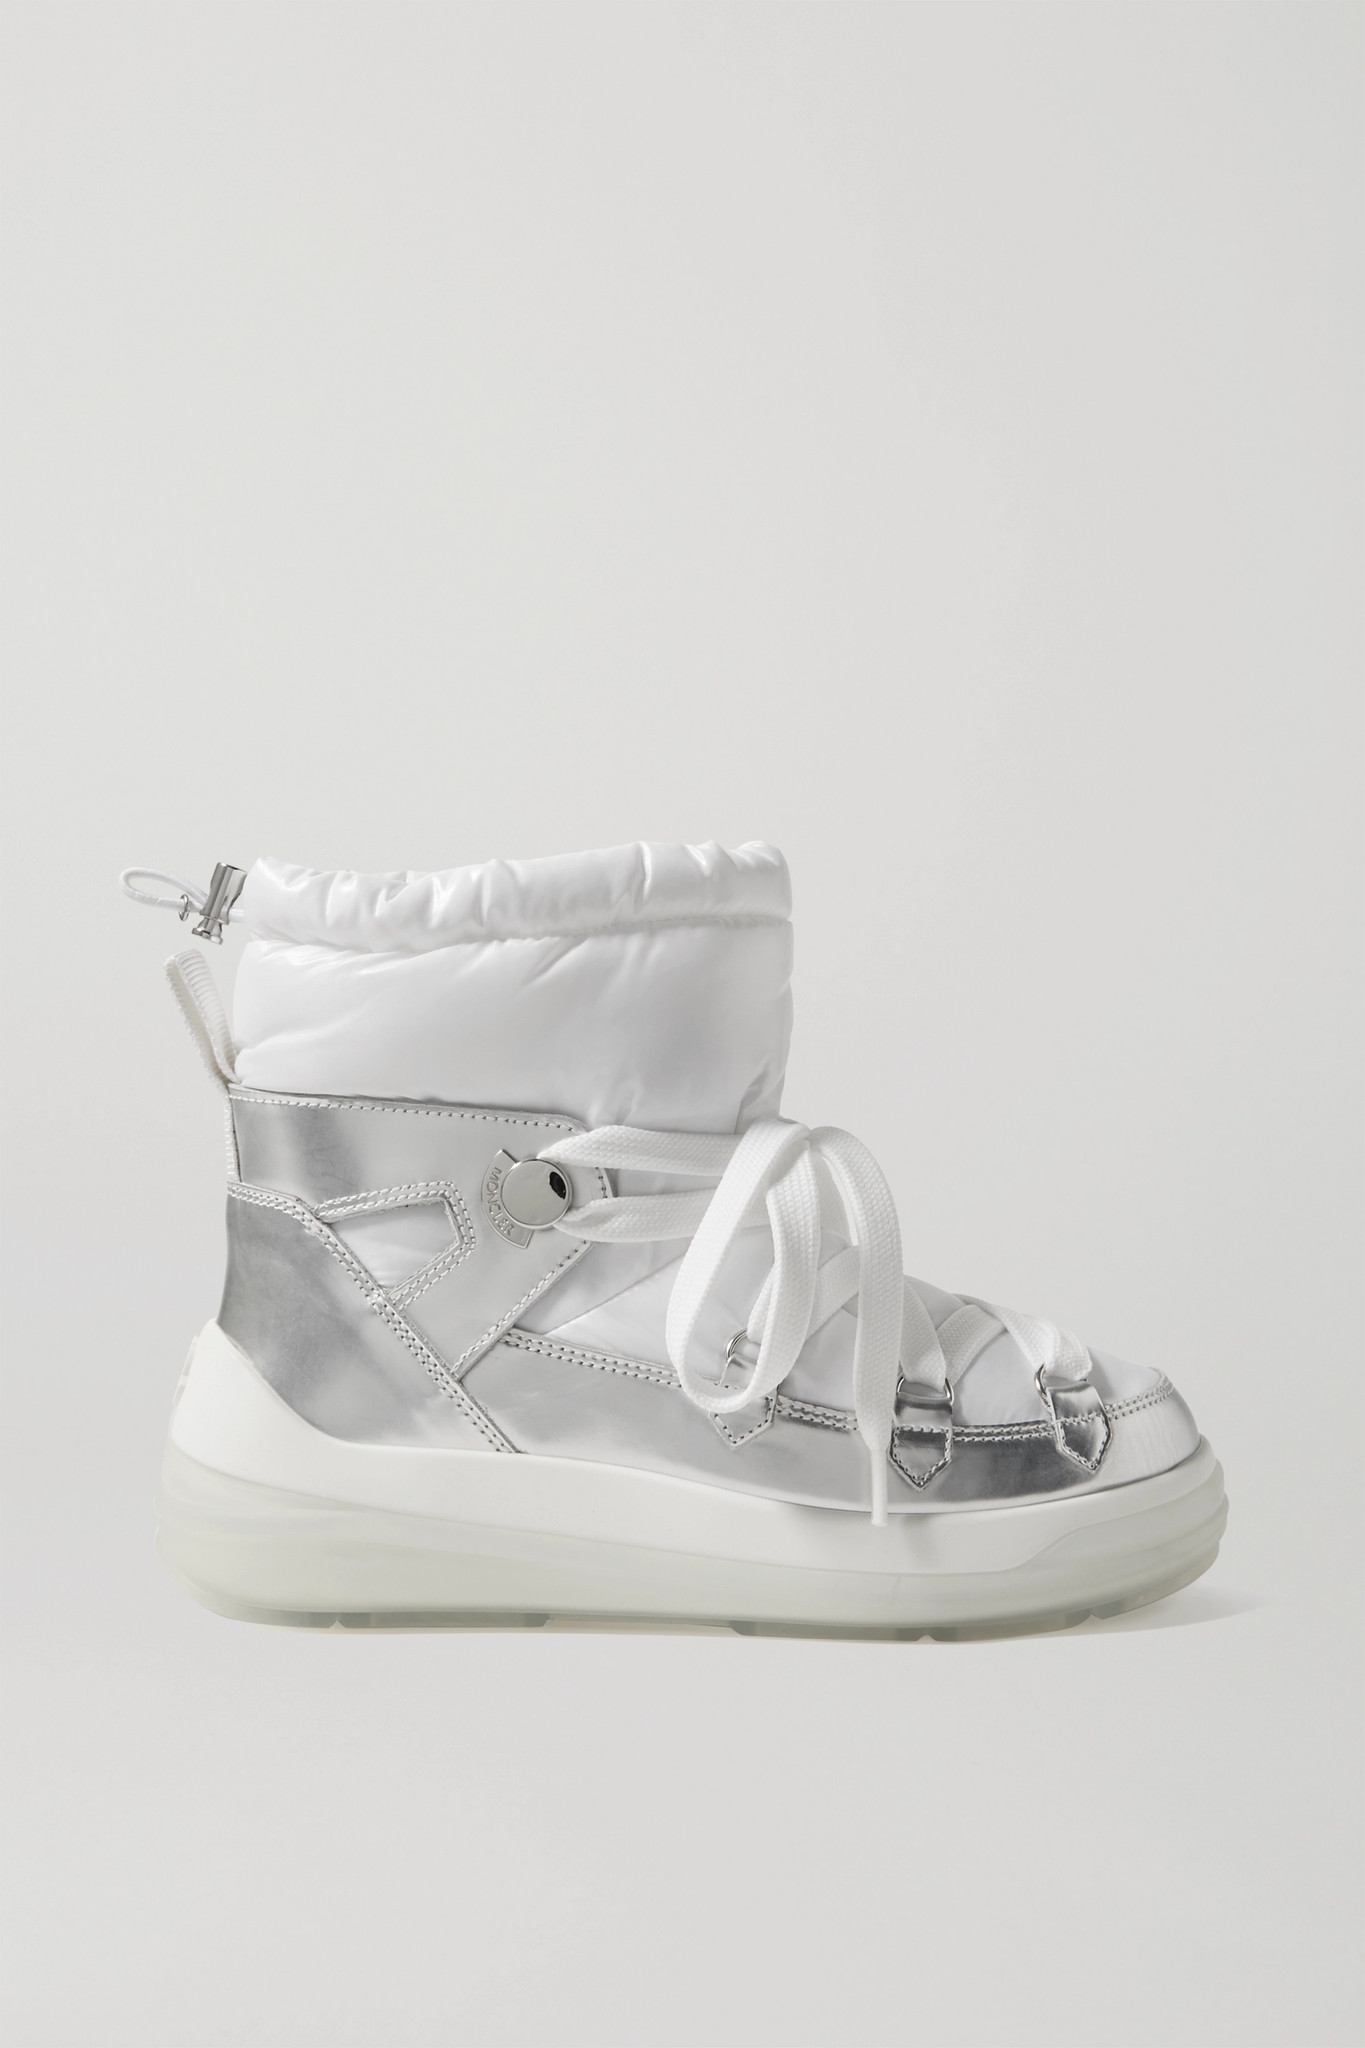 MONCLER - Insolux Metallic Leather And Padded Shell Ankle Boots - White - IT40